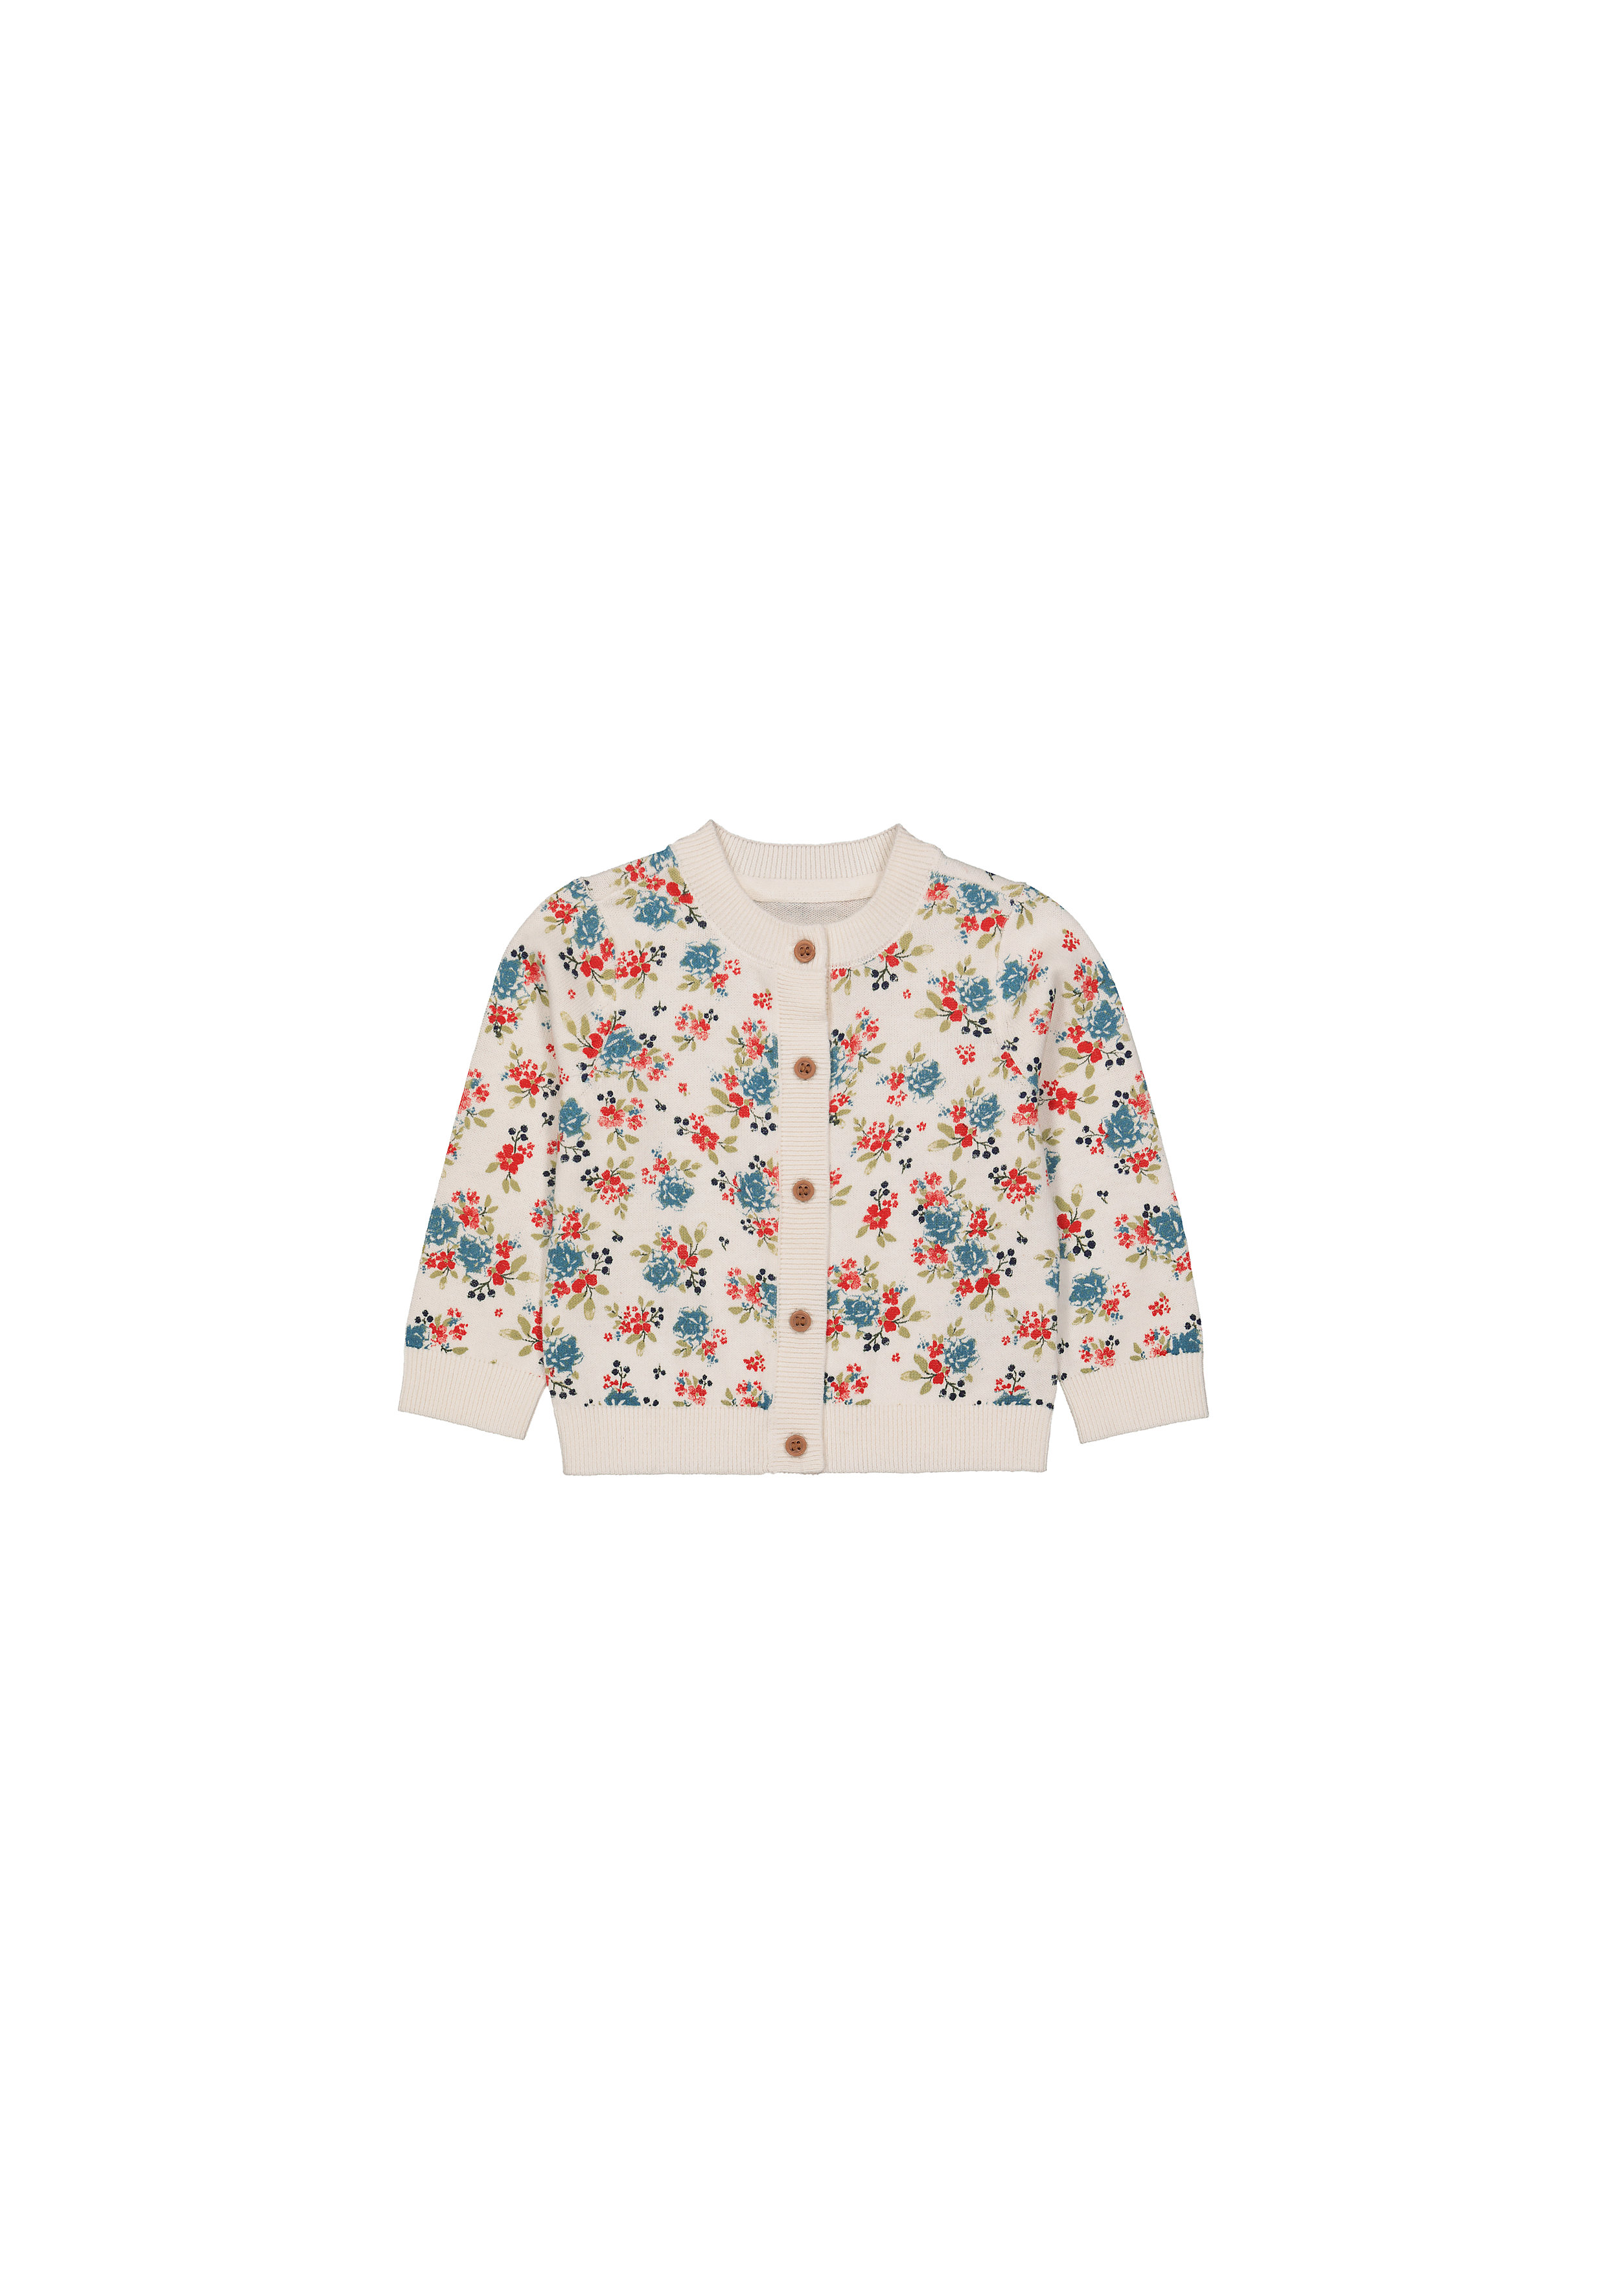 Mothercare | Girls Full Sleeves Sweaters  - Multicolor